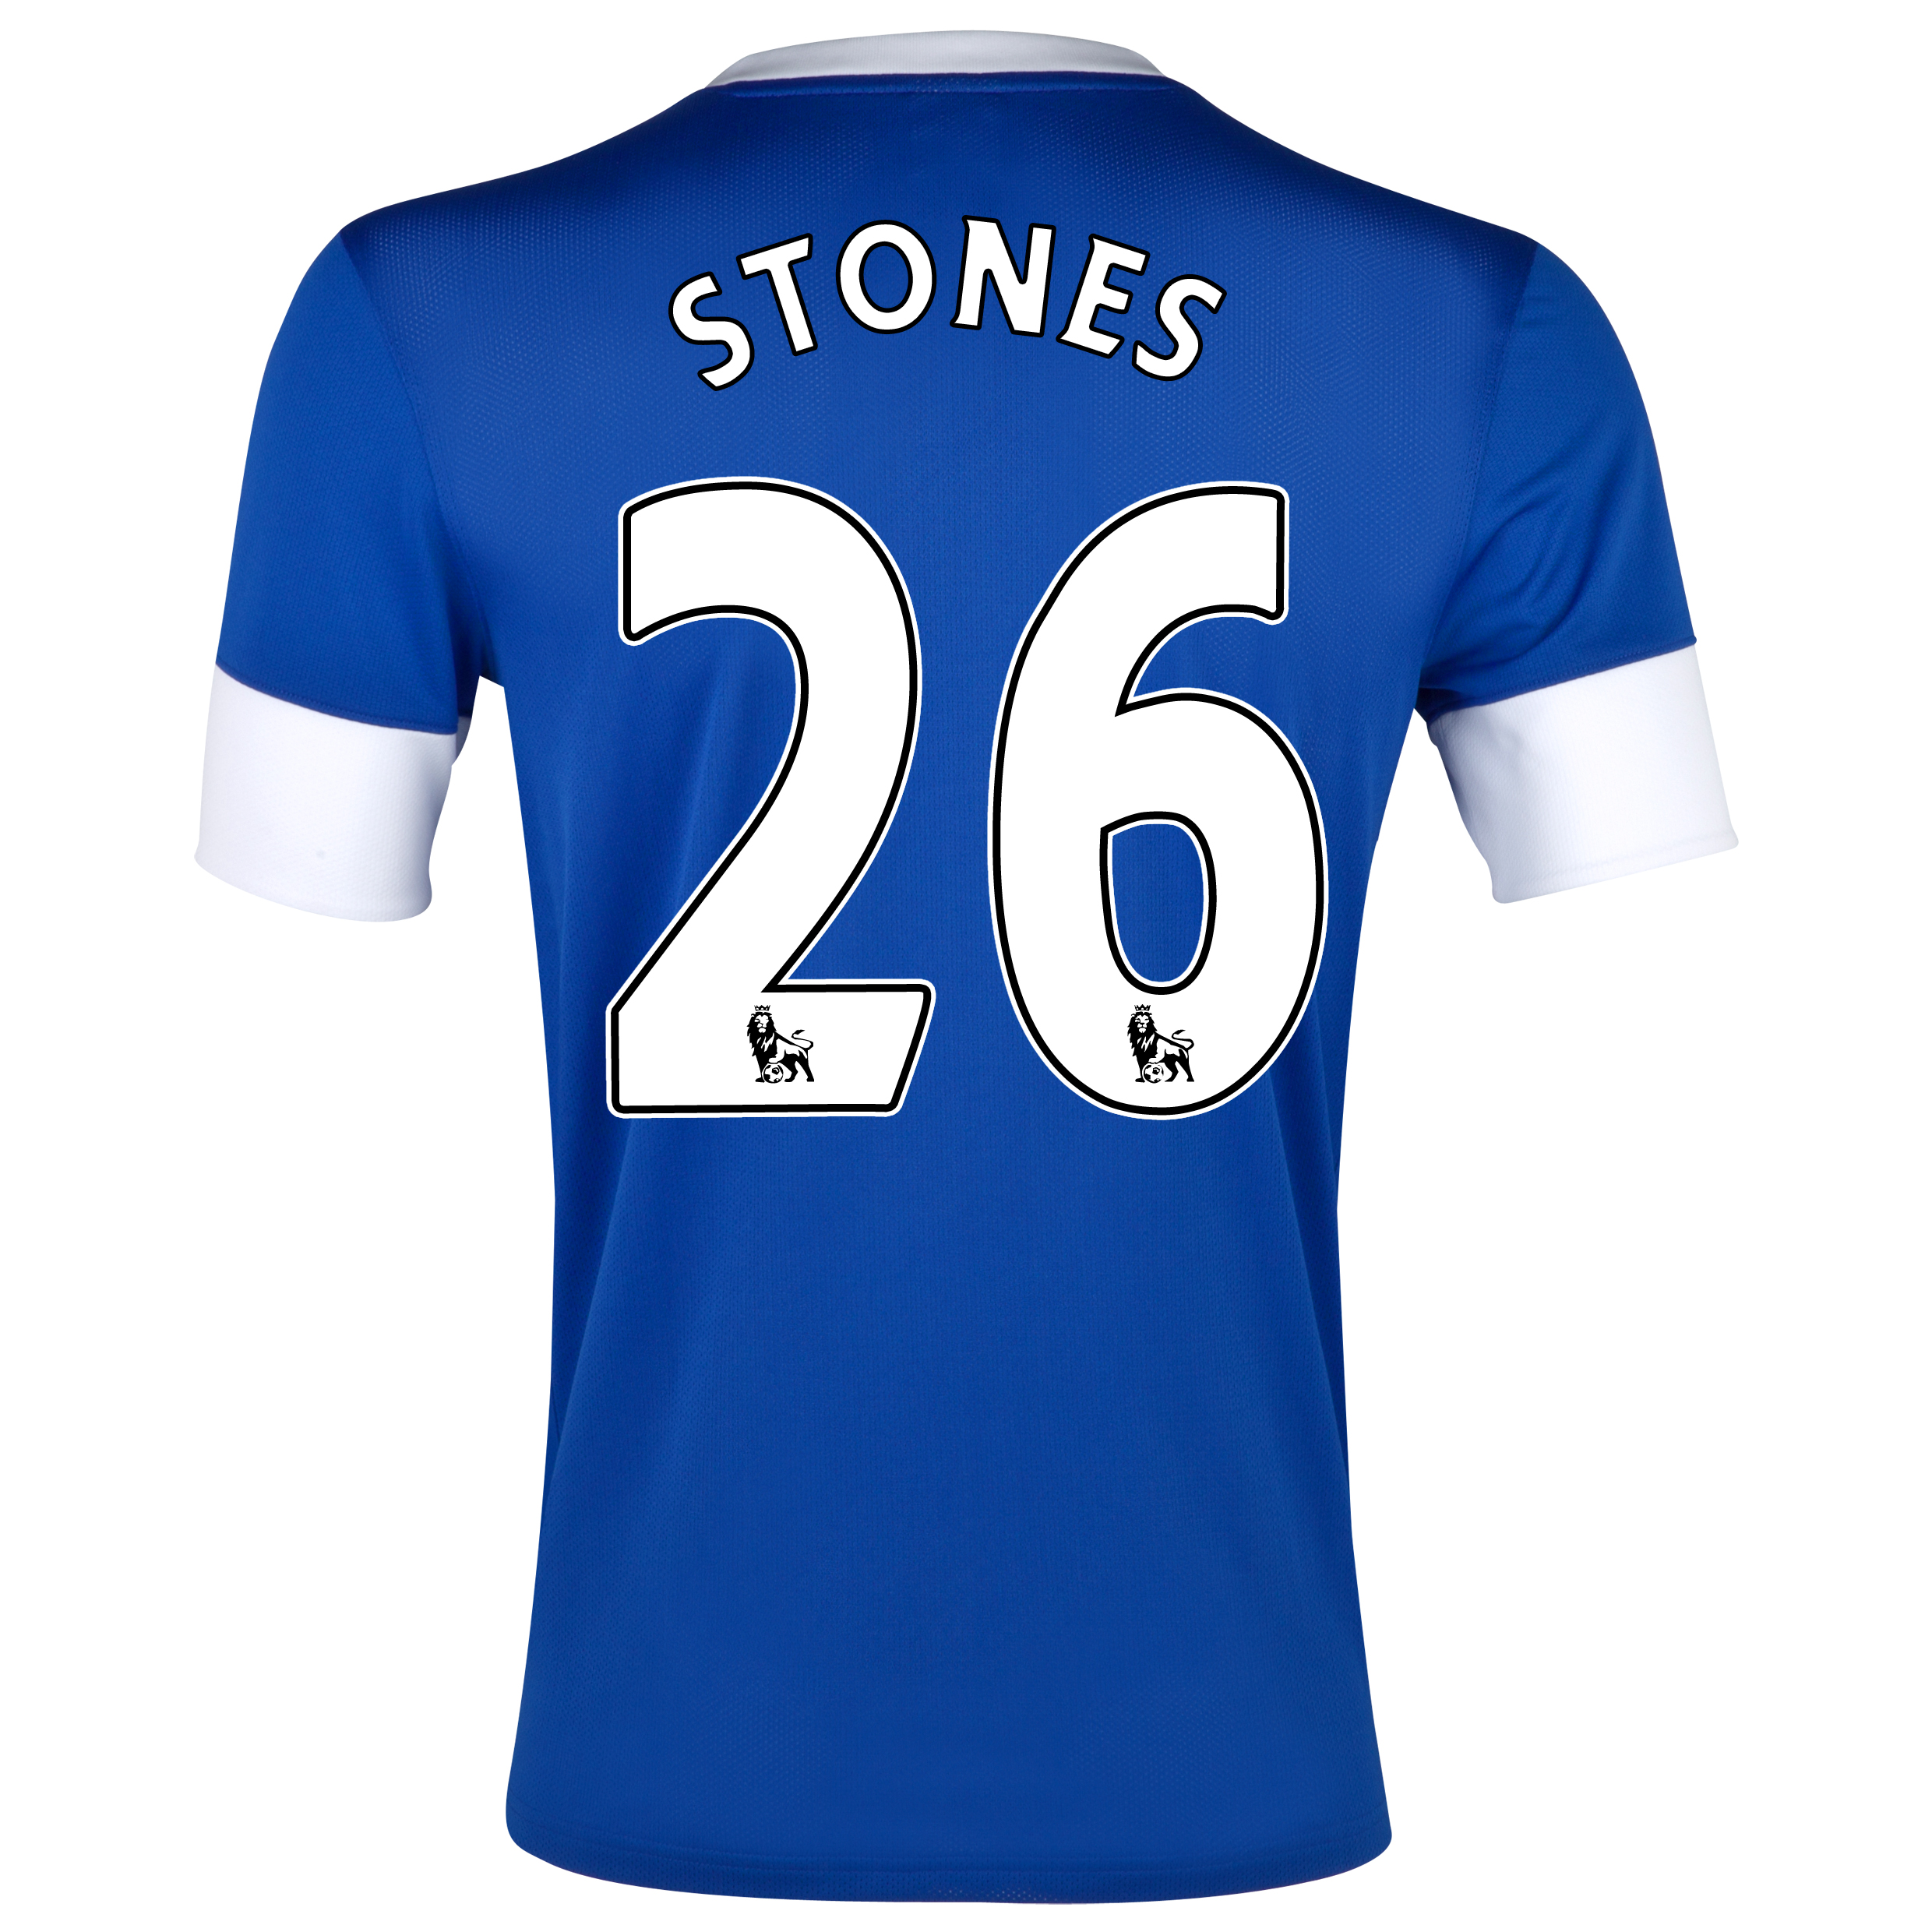 Everton Home Shirt 2012/13 with Stones 26 printing